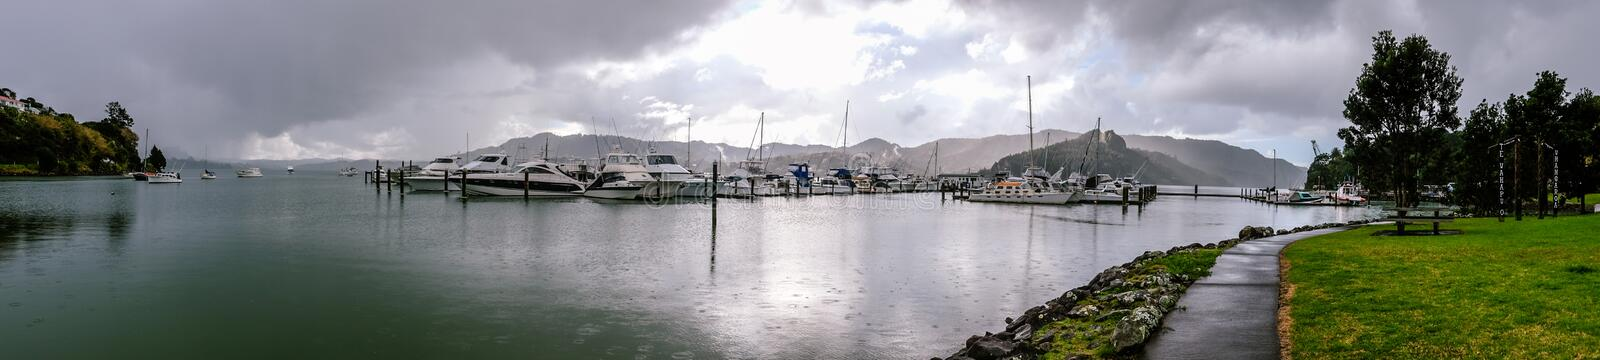 Panorama of Whangaroa Harbour marina on a rainy day in Northland, New Zealand, NZ. Panorama of Whangaroa Harbour boat marina on a rainy overcast day in Northland stock images